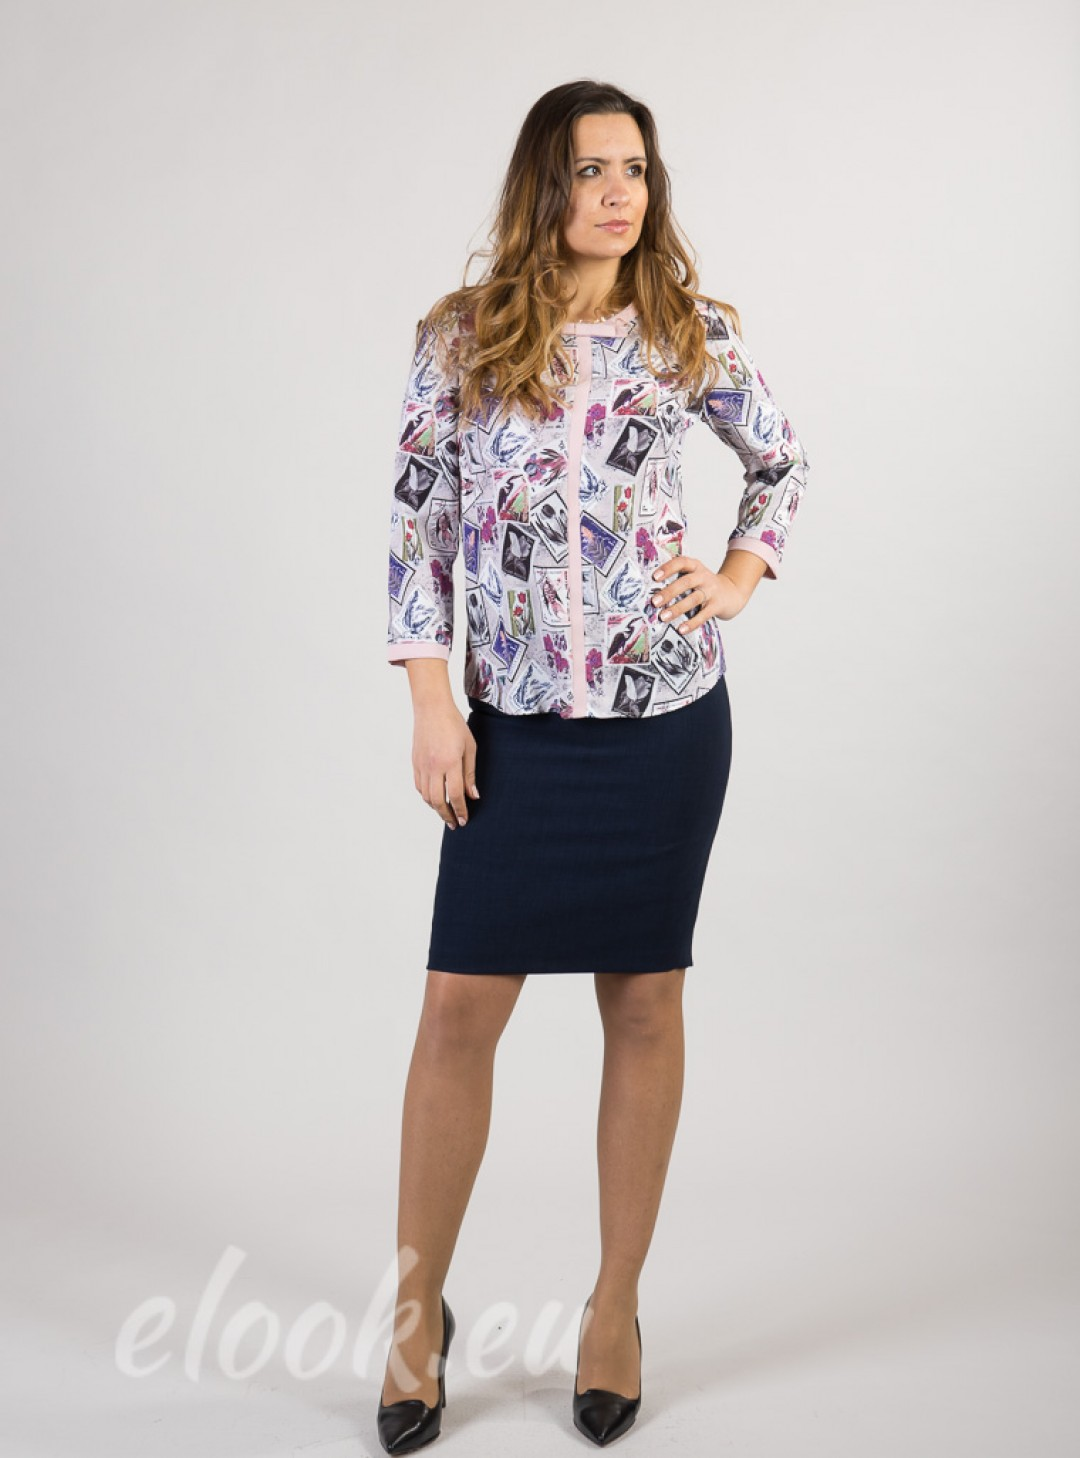 Blouse with print motif on sta...